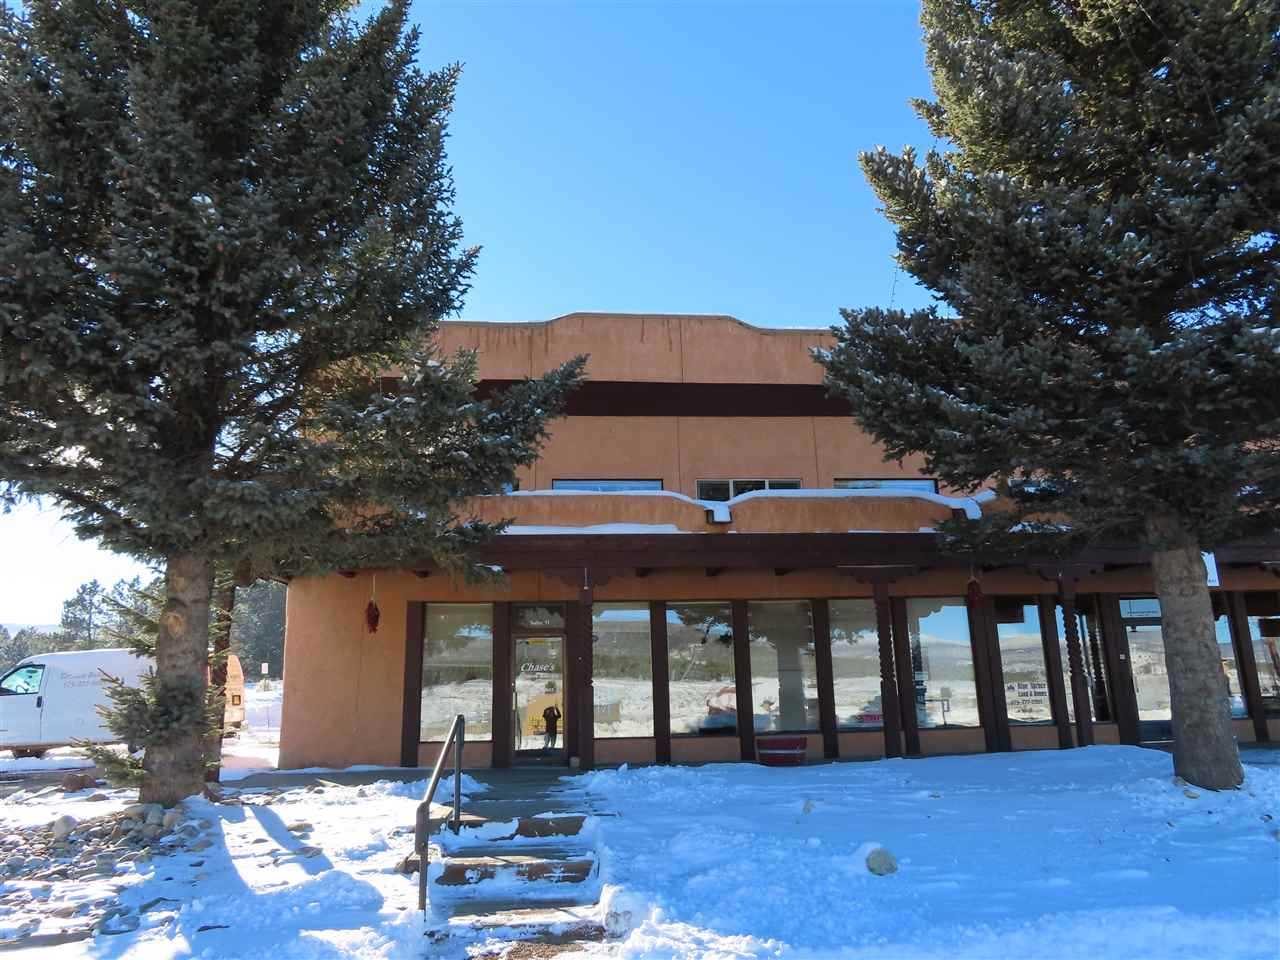 3407 Mountain View Blvd Unit 11, Angel Fire, NM 87710